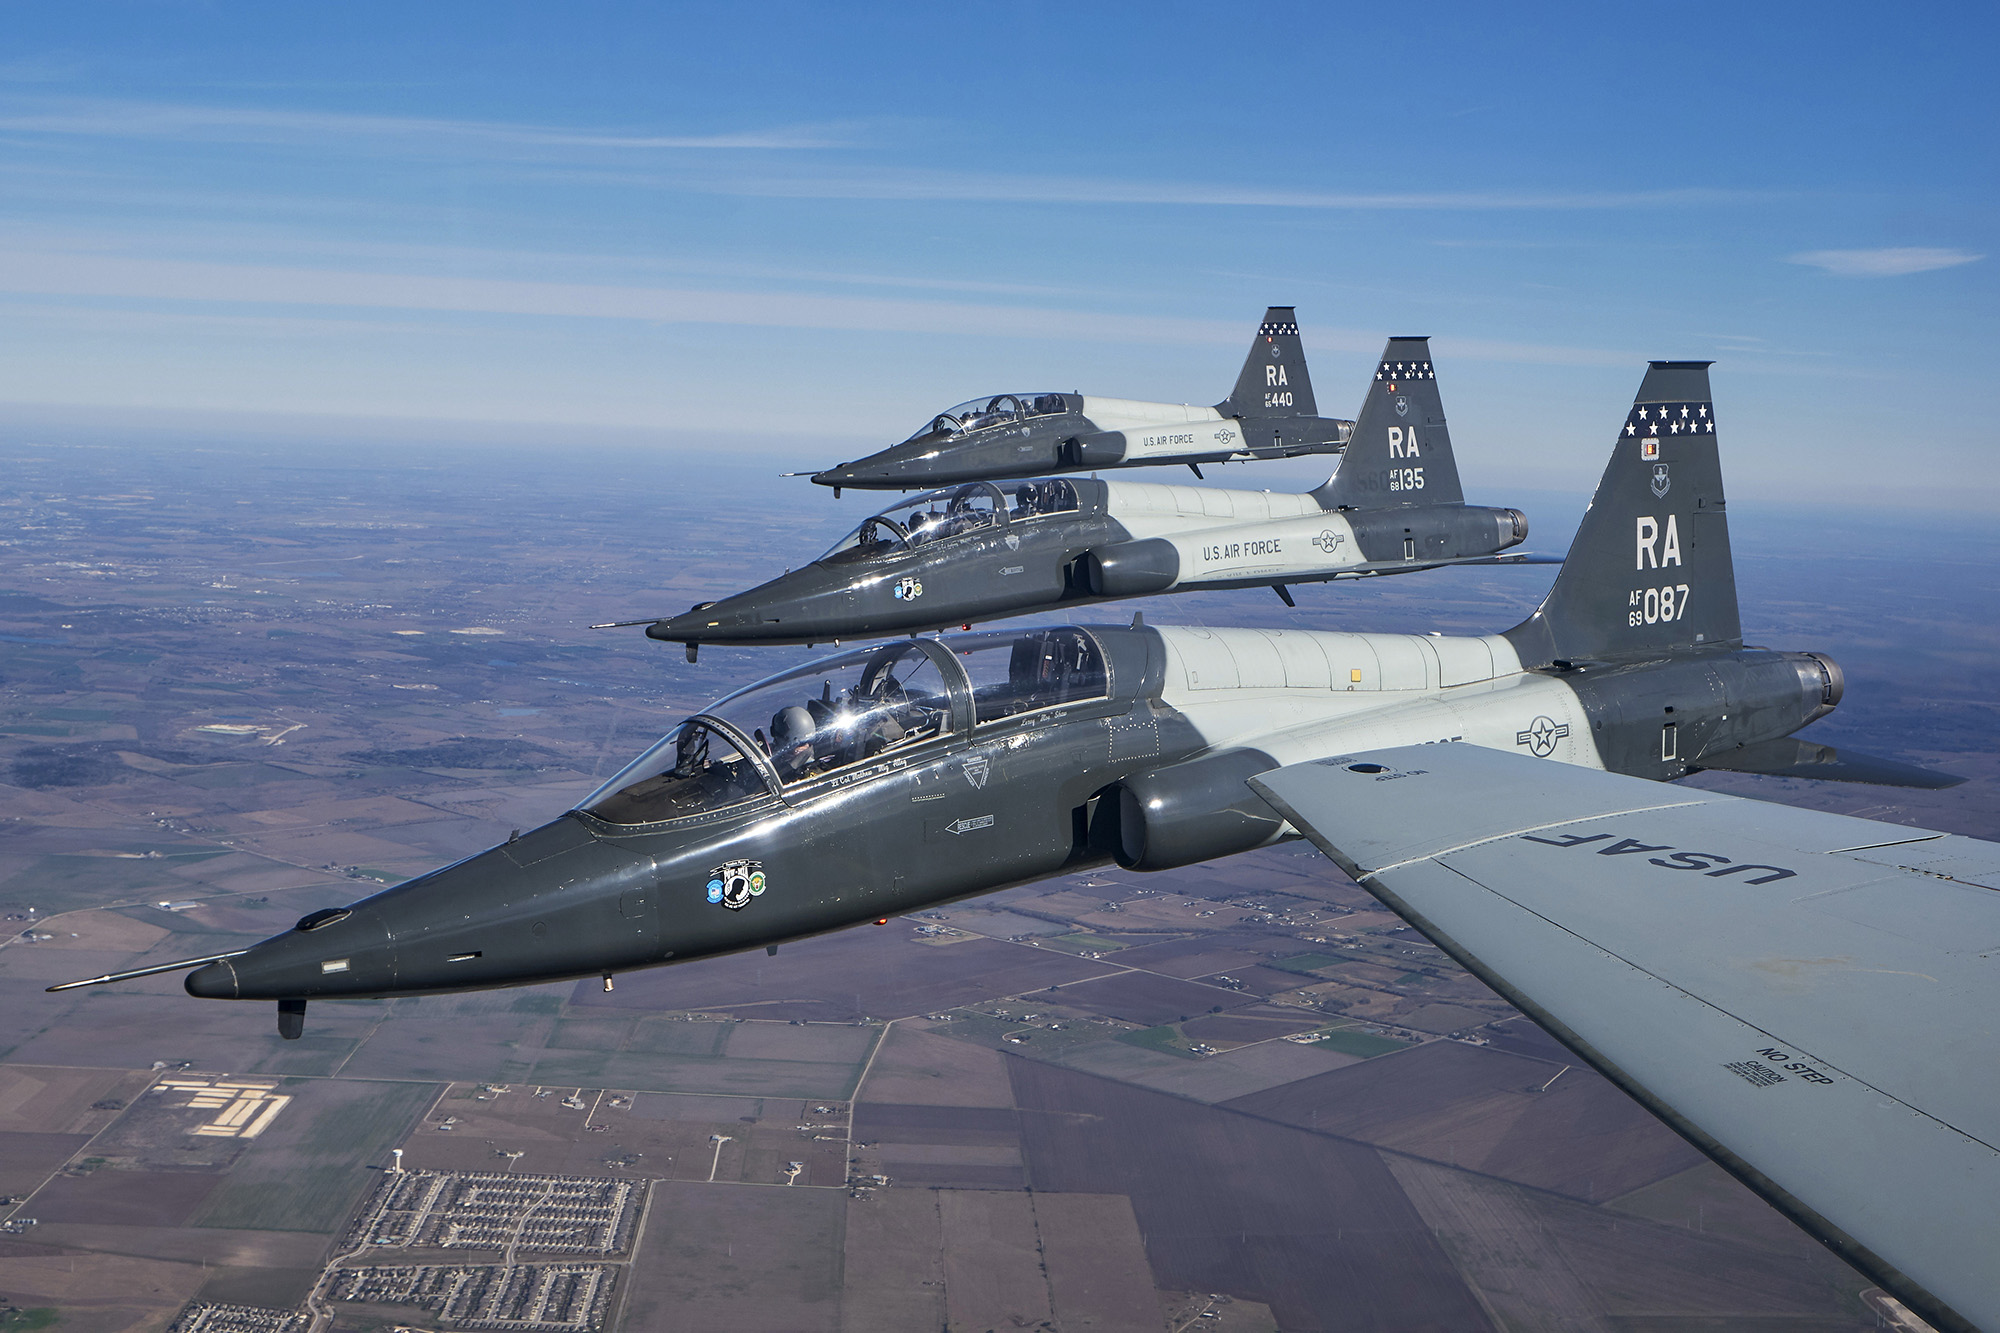 T-38C formation flying